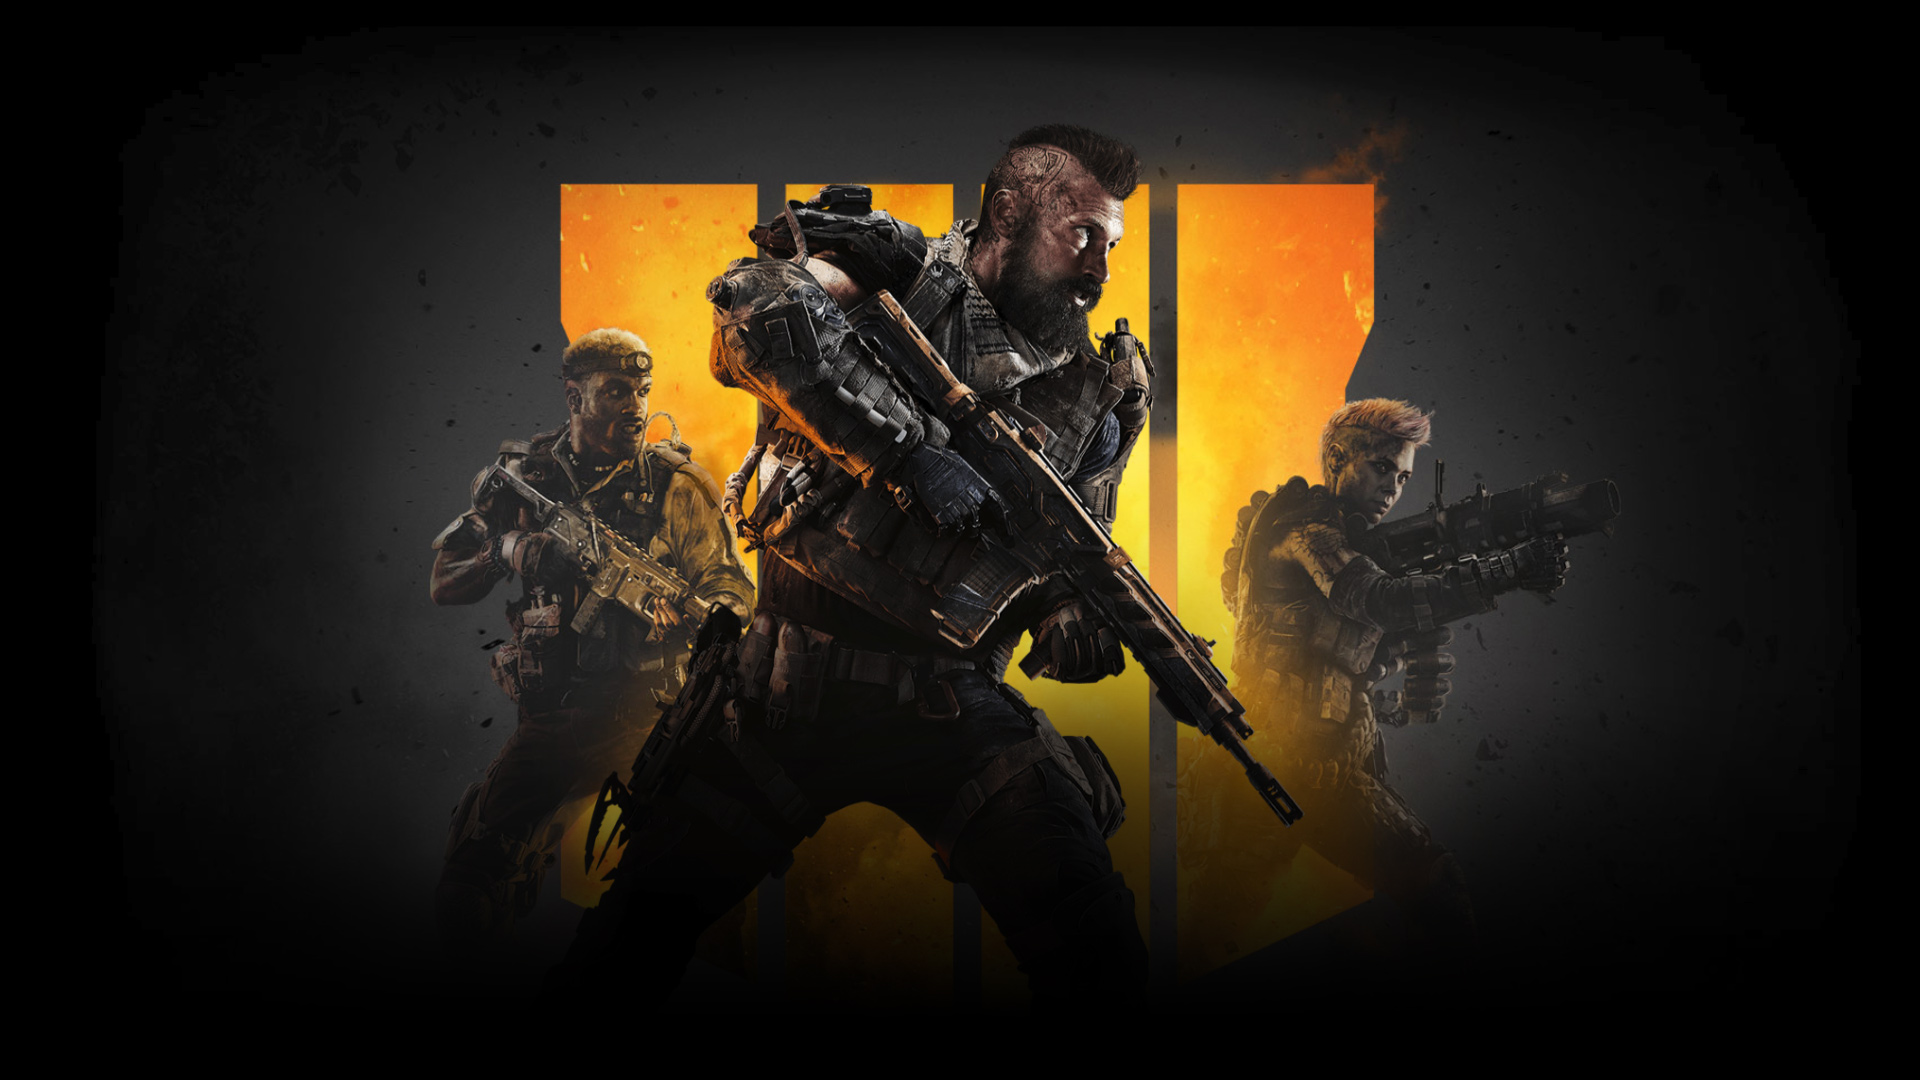 Black Ops 4 Wallpaper Posted By Christopher Peltier